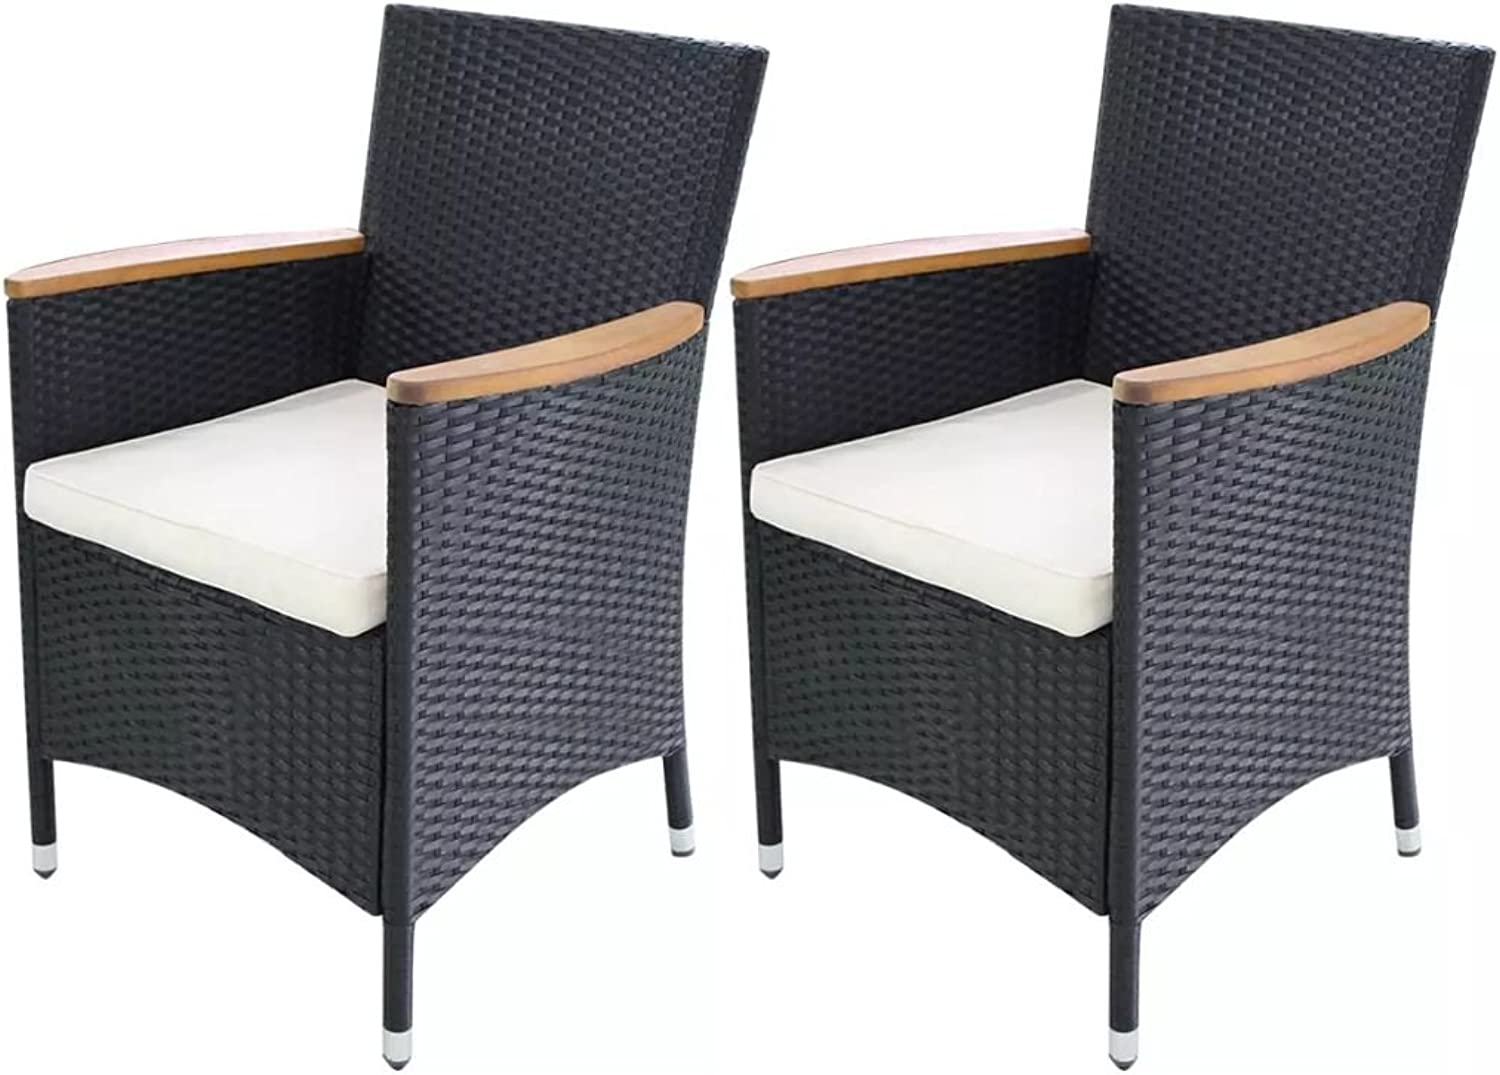 Festnight Garden Chairs 2 pcs Dining Chairs with Removable Cushions Black Poly Rattan 59x60x88 cm